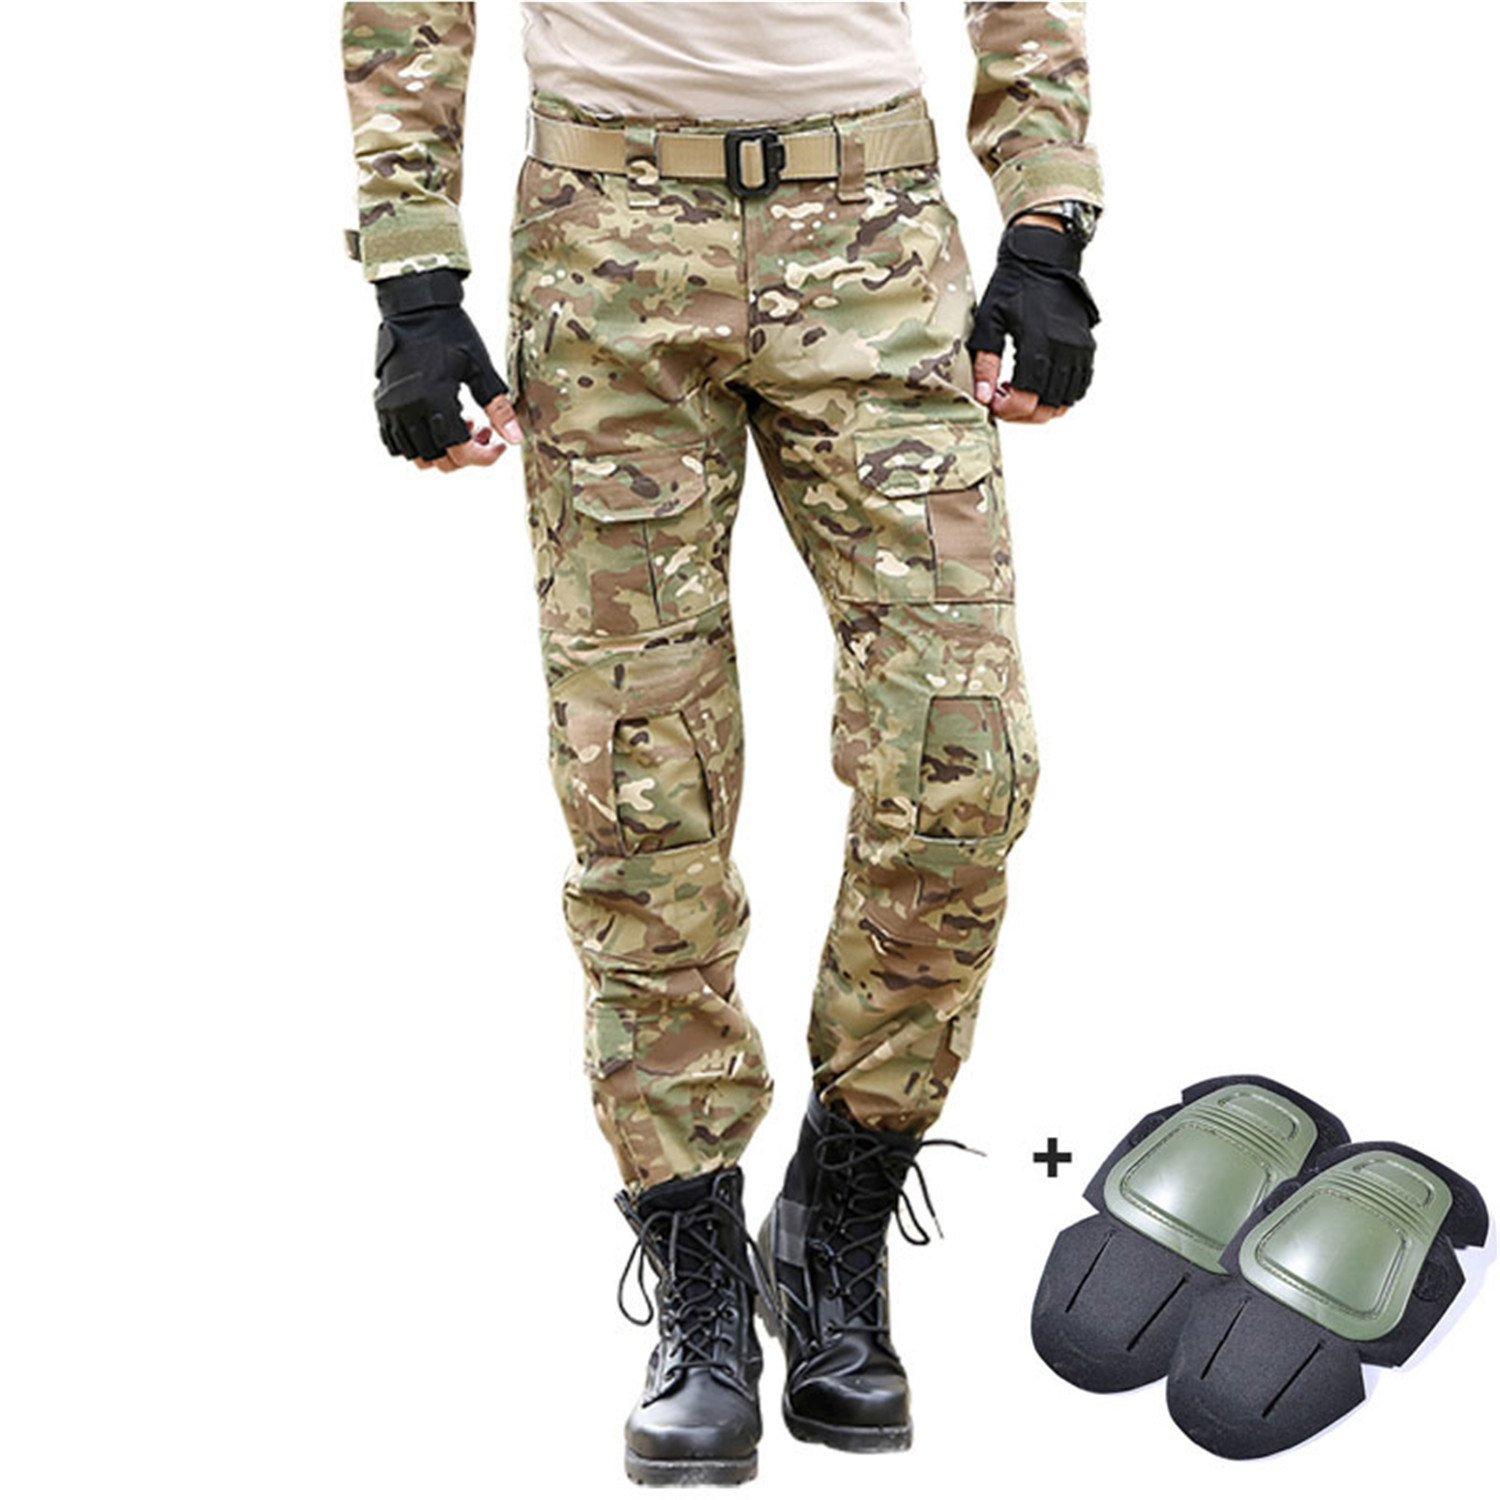 Dapengzhu Tactical Pants Camo Cargo Military PantMen's Airsoft Paintball Slim Casual Camouflage Cargo Trousers